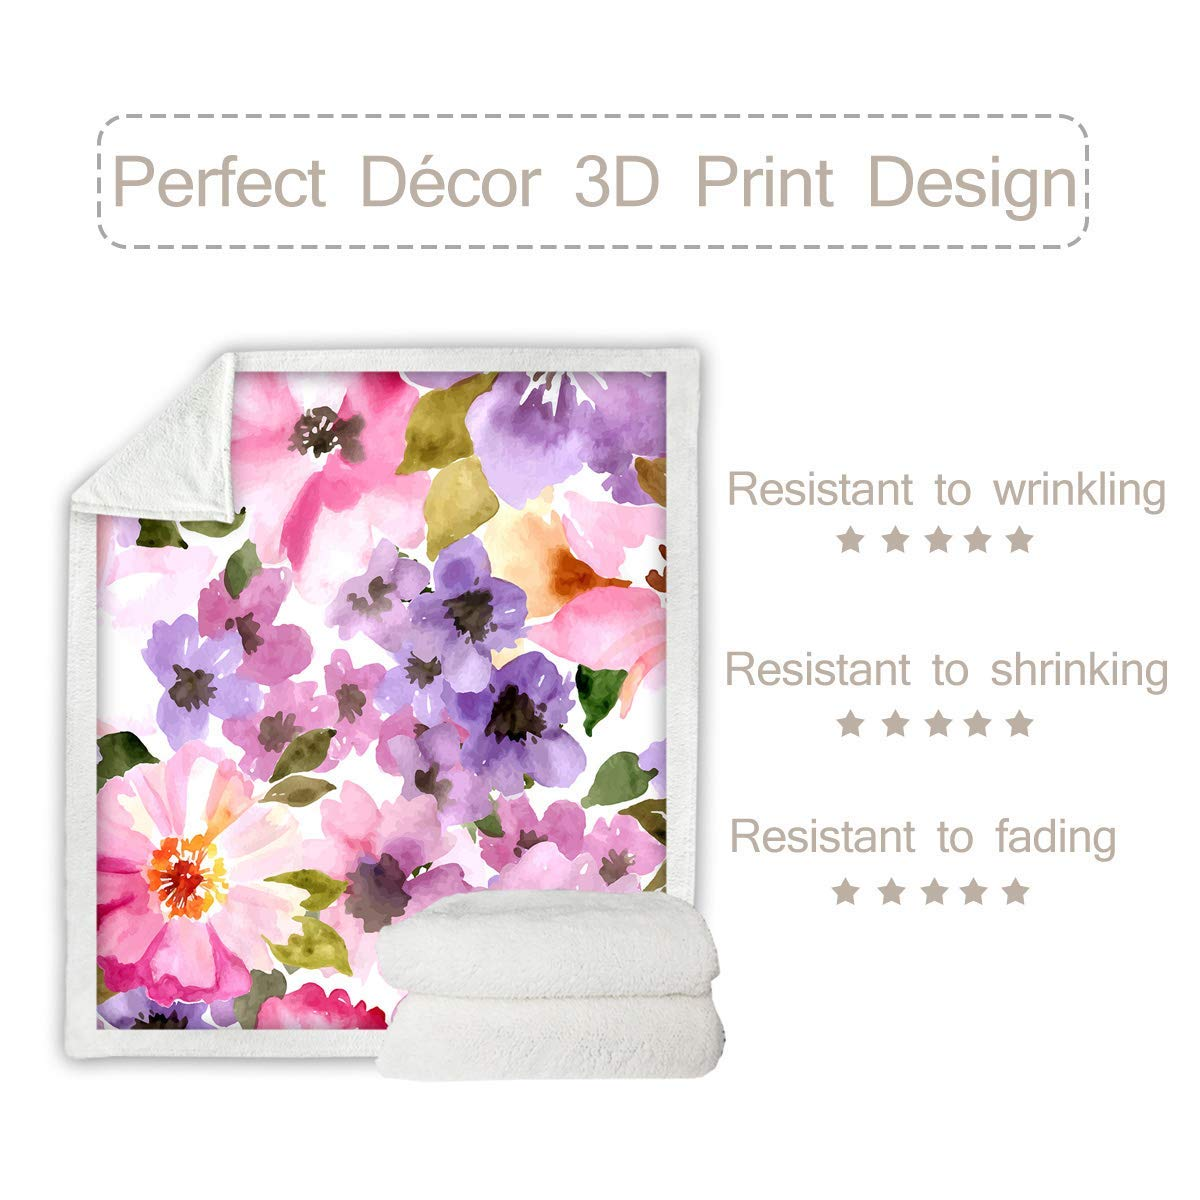 Sleepwish Botanical Sherpa Fleece Blanket 3D Printed Watercolor Plush Throw Blanket Shabby Chic Fuzzy Soft Blanket Artistic Colorful Floral, Baby 30x40